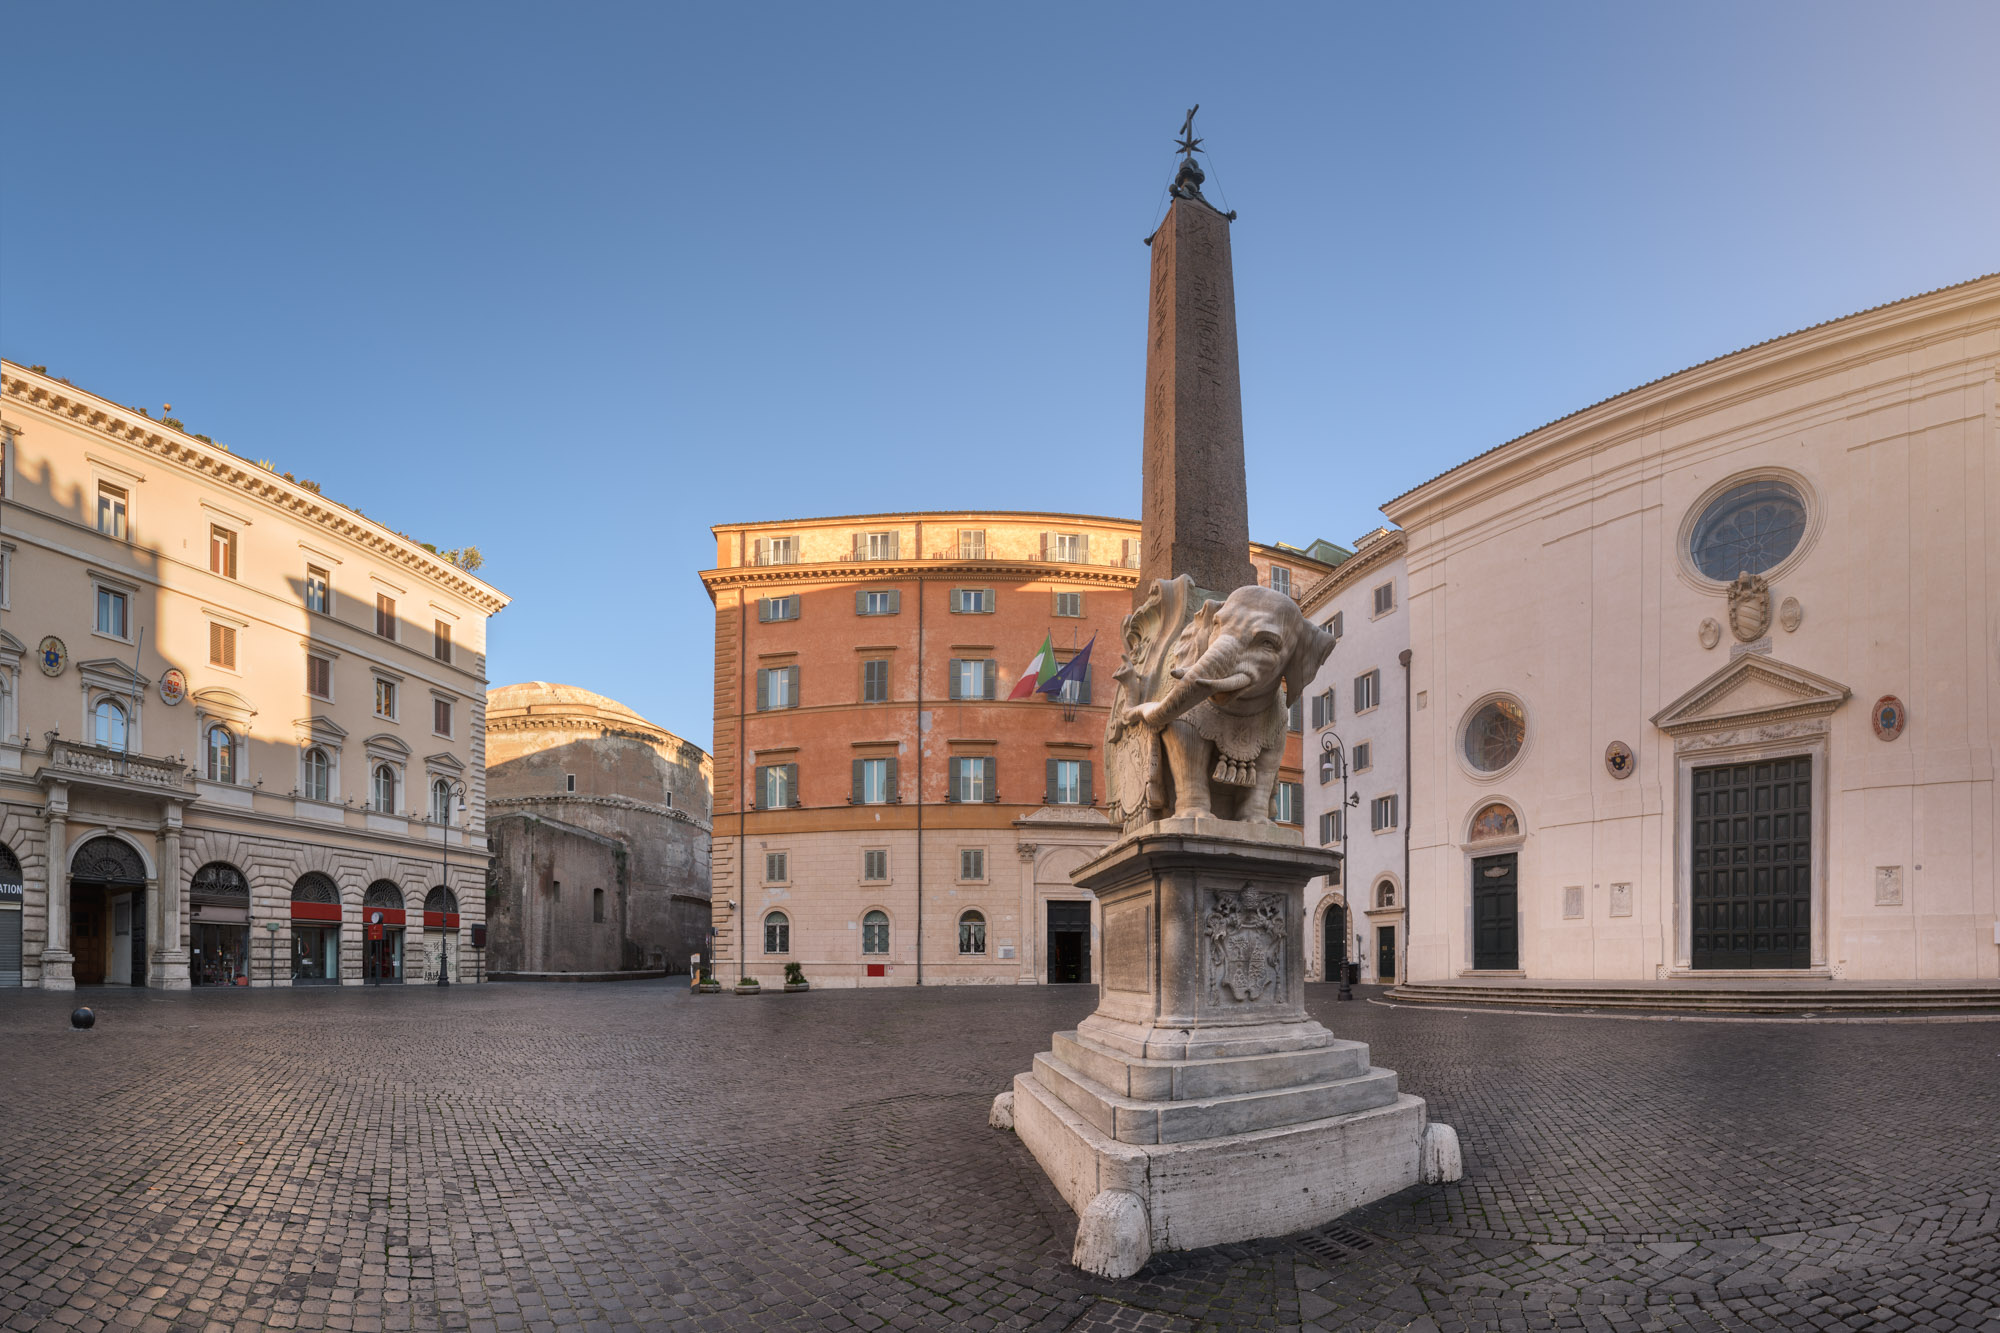 Piazza Minerva and Apries Obelisk, Rome, Italy